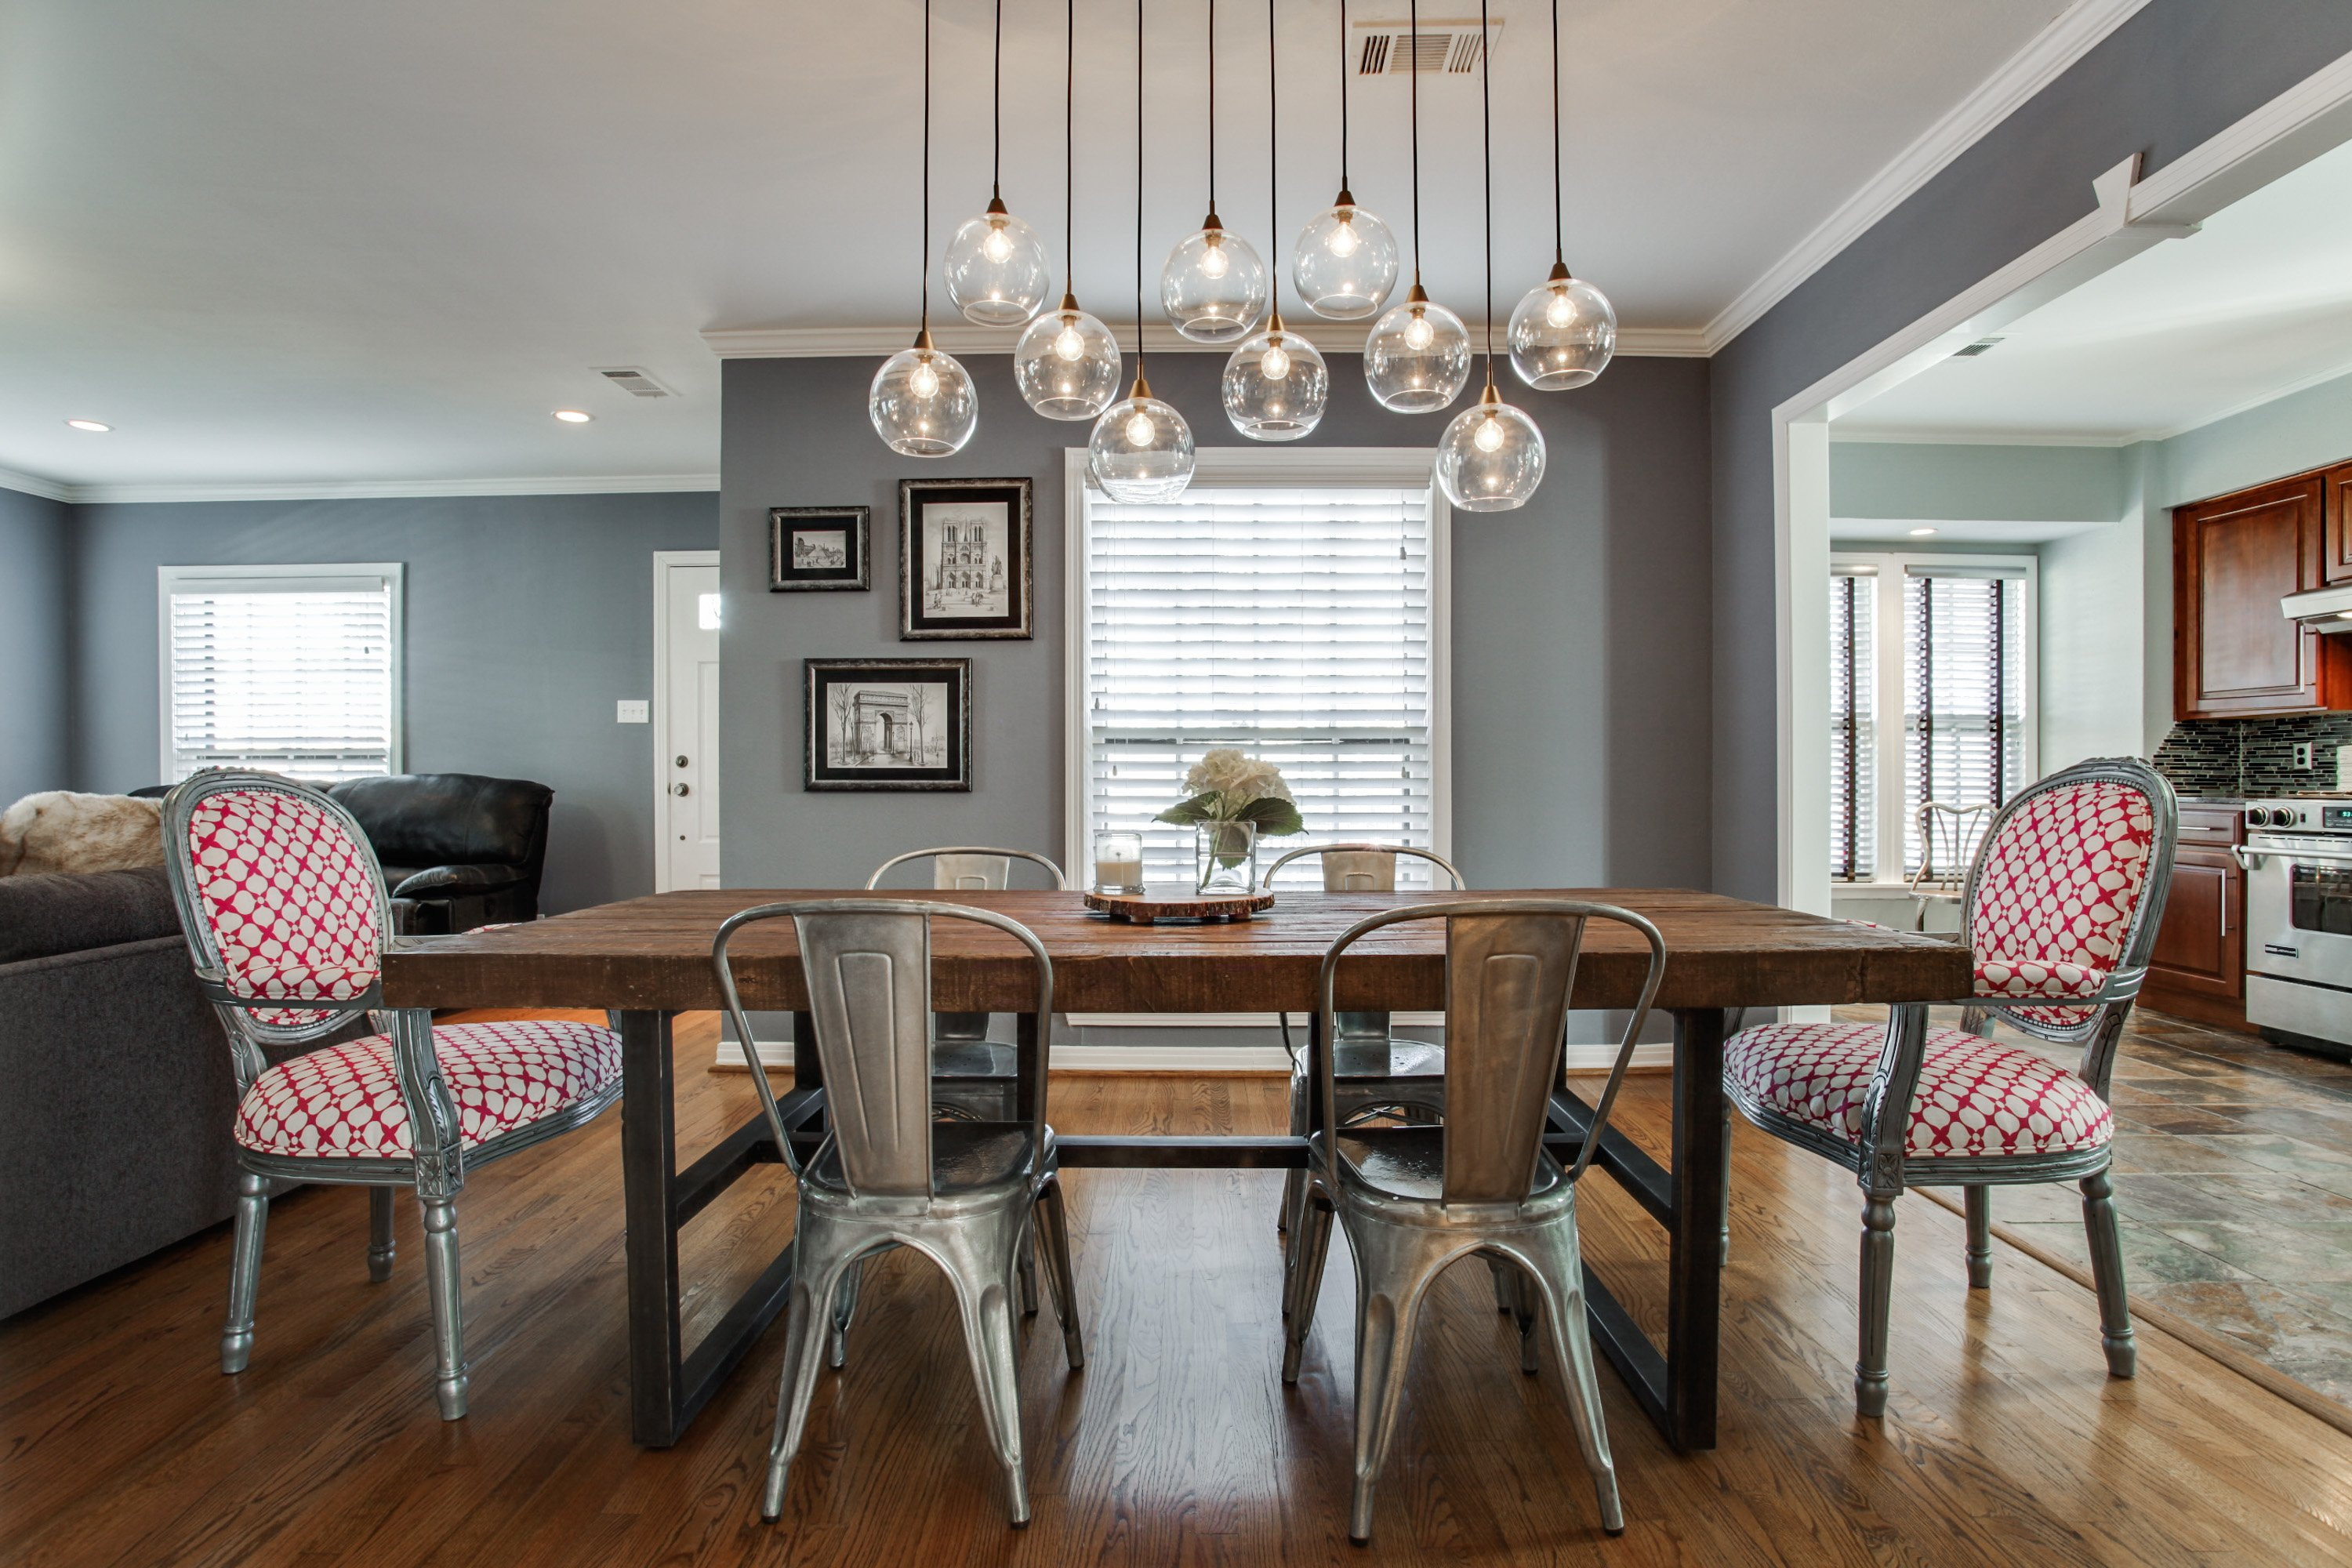 Love Where You Live: Dining Room